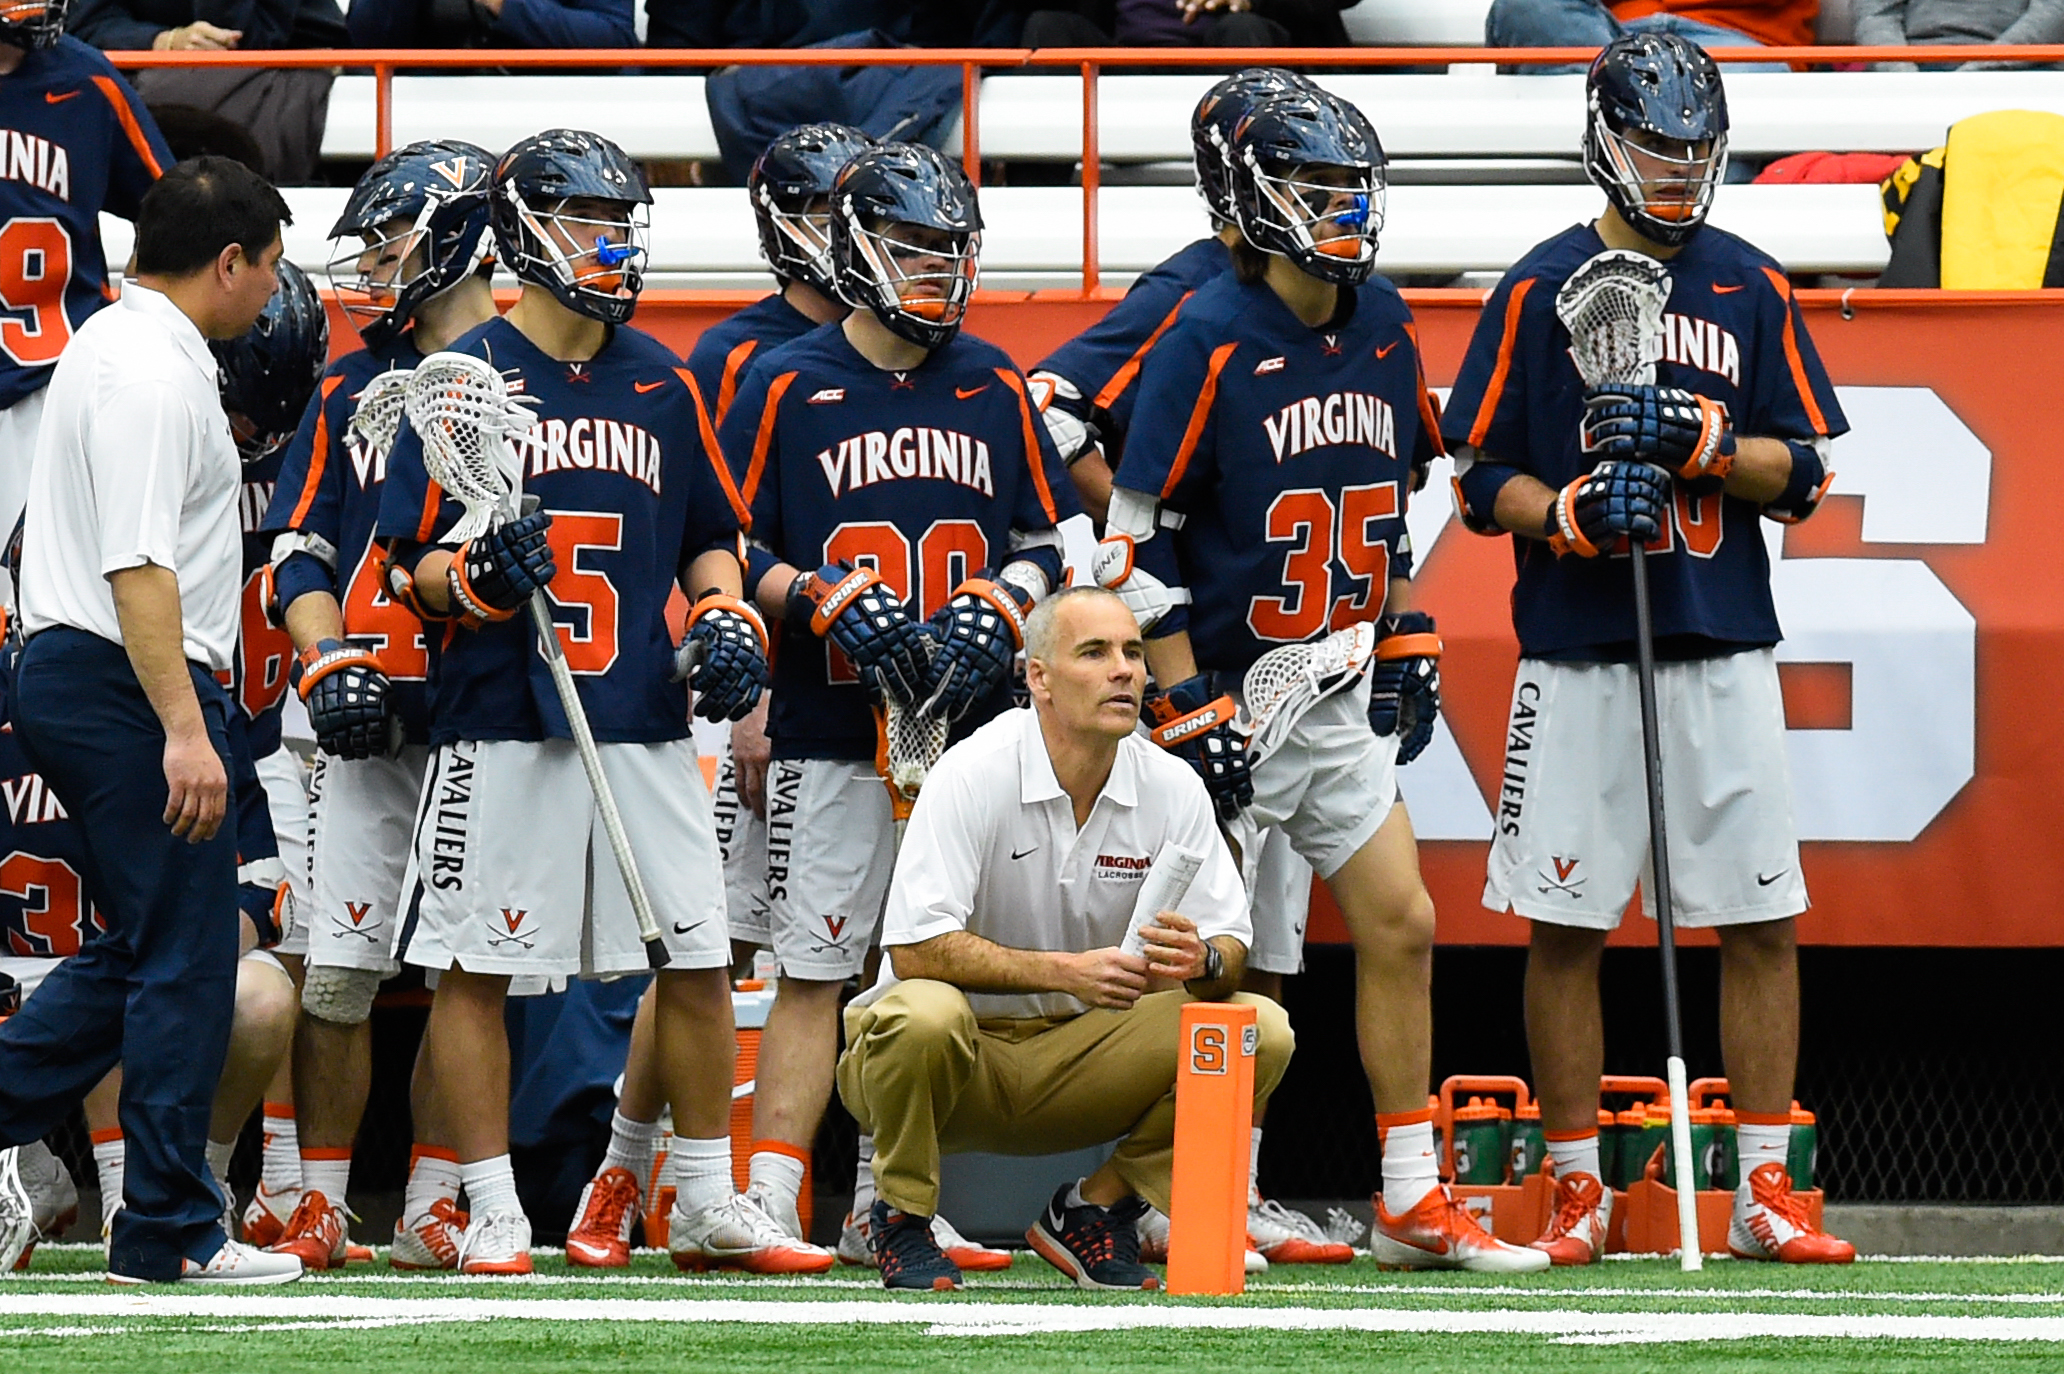 Virginia v Syracuse